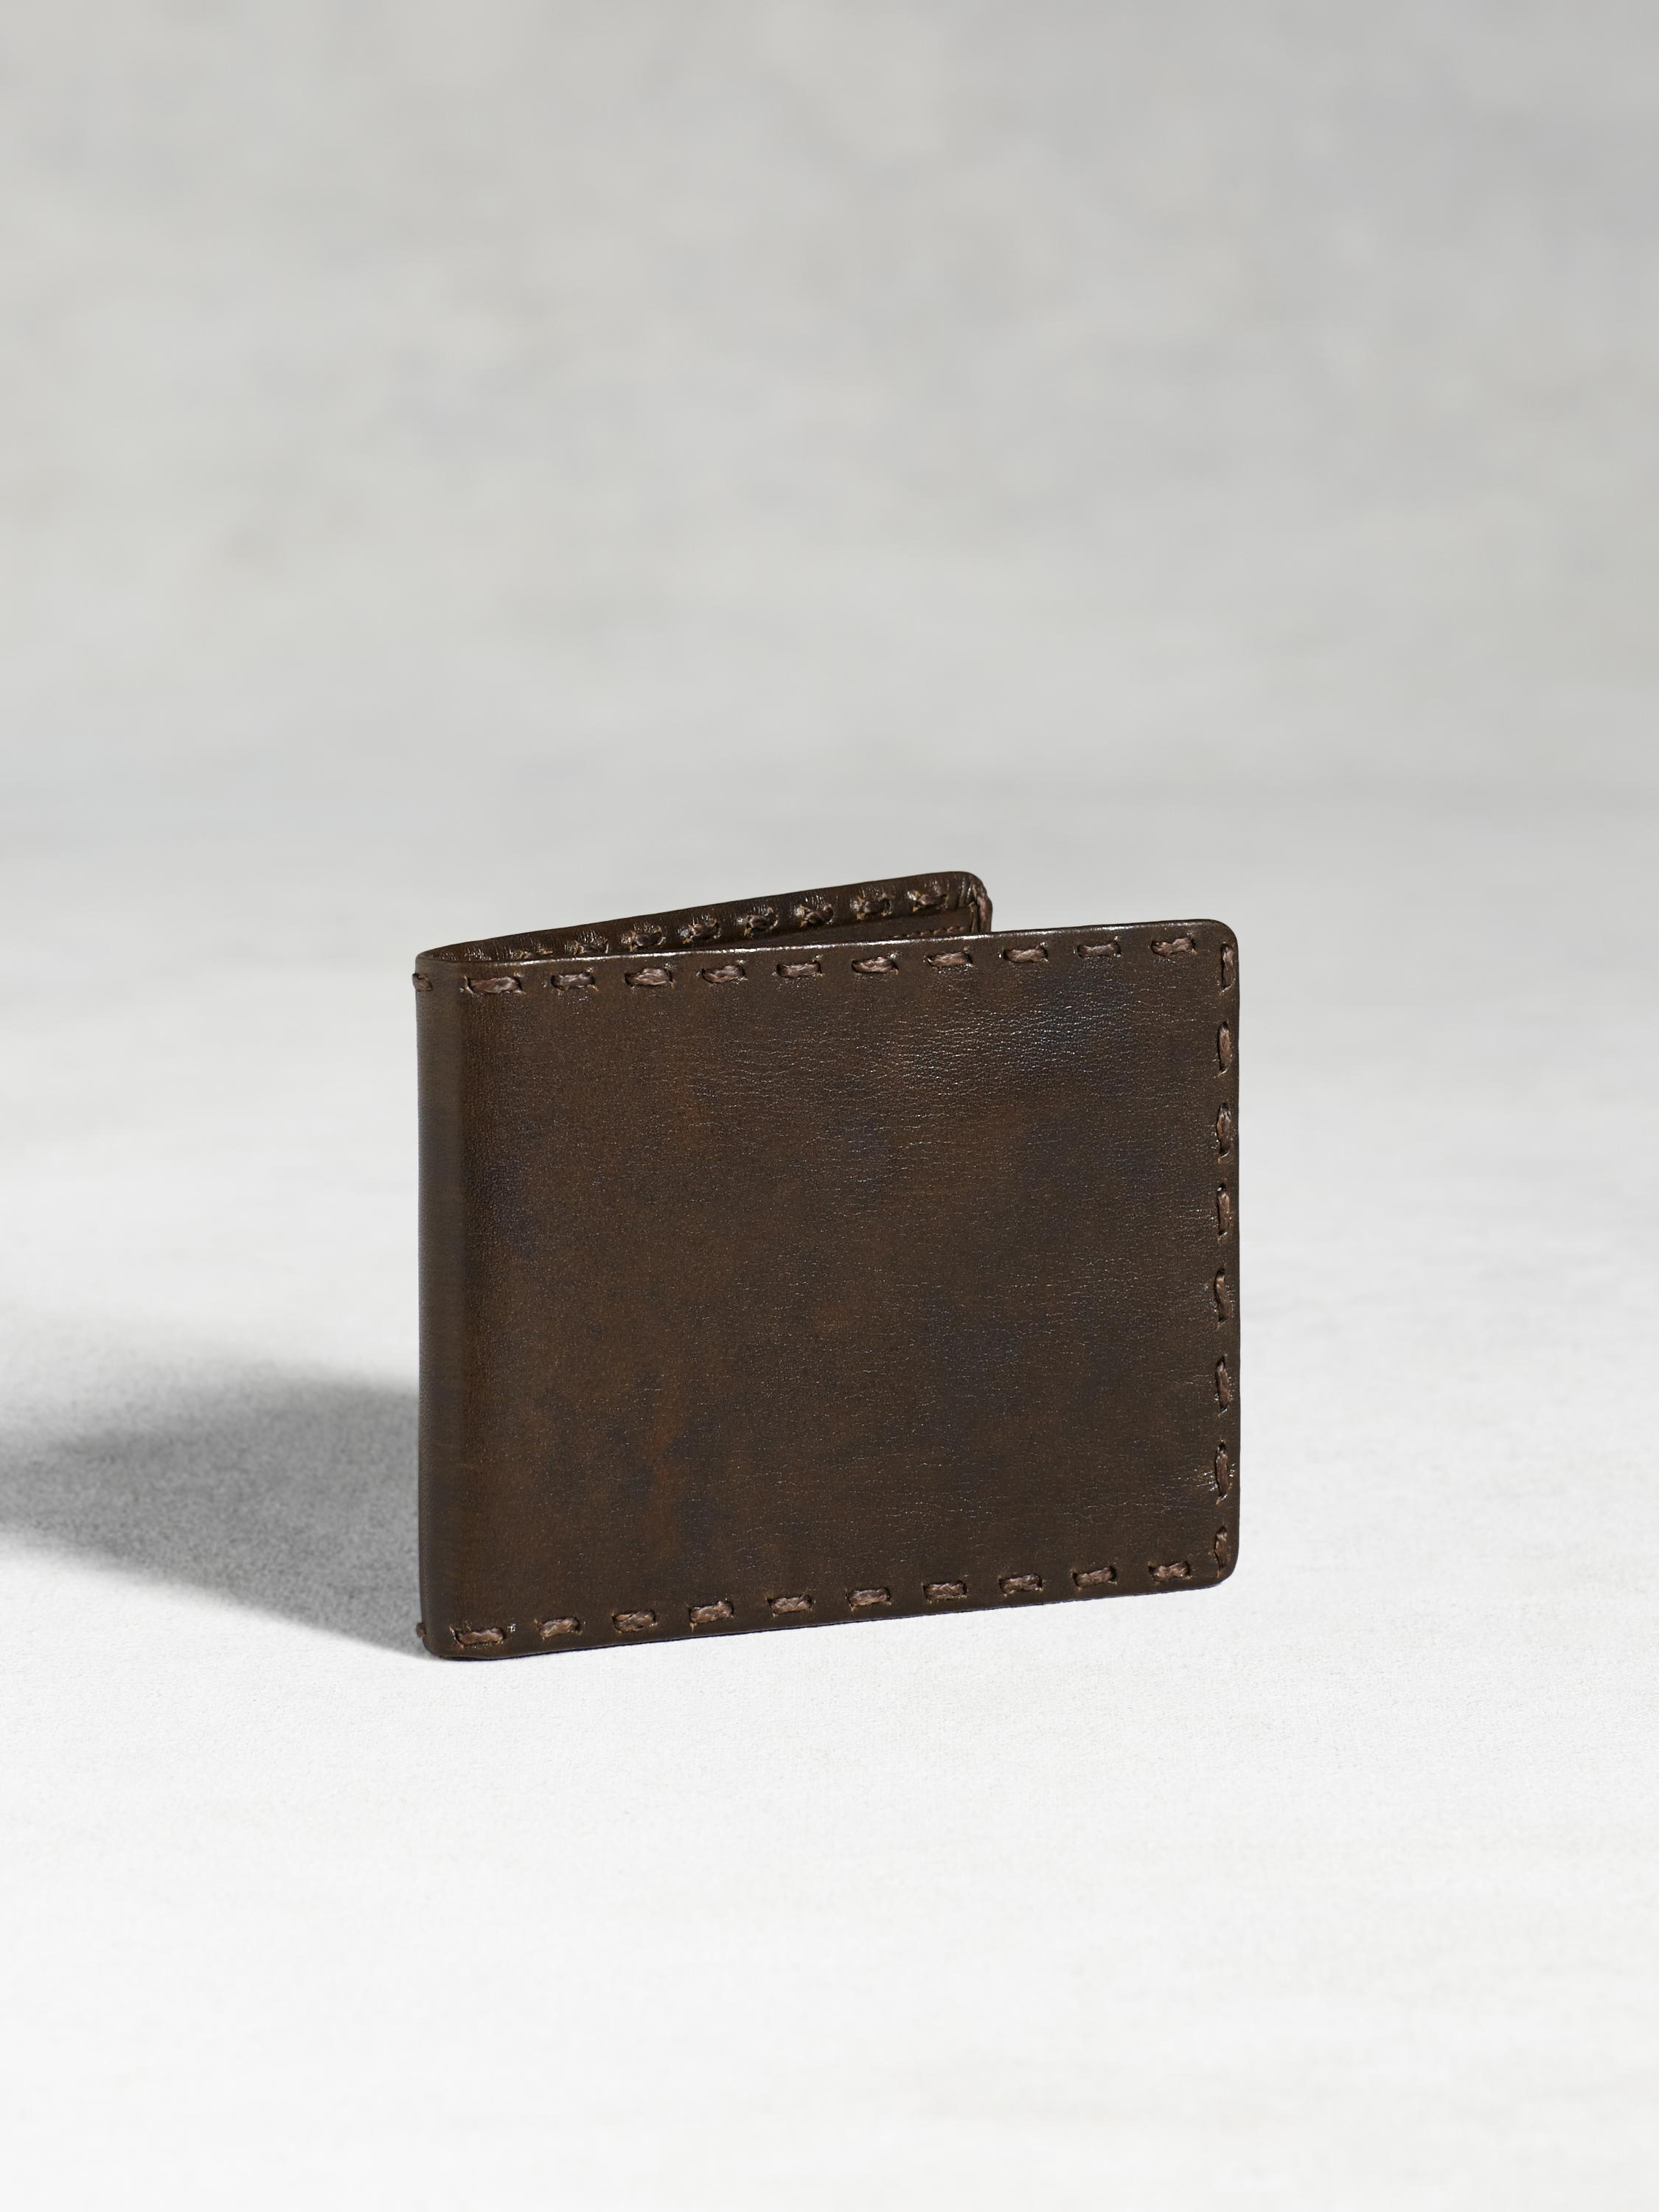 Sequoia Slimfold Wallet